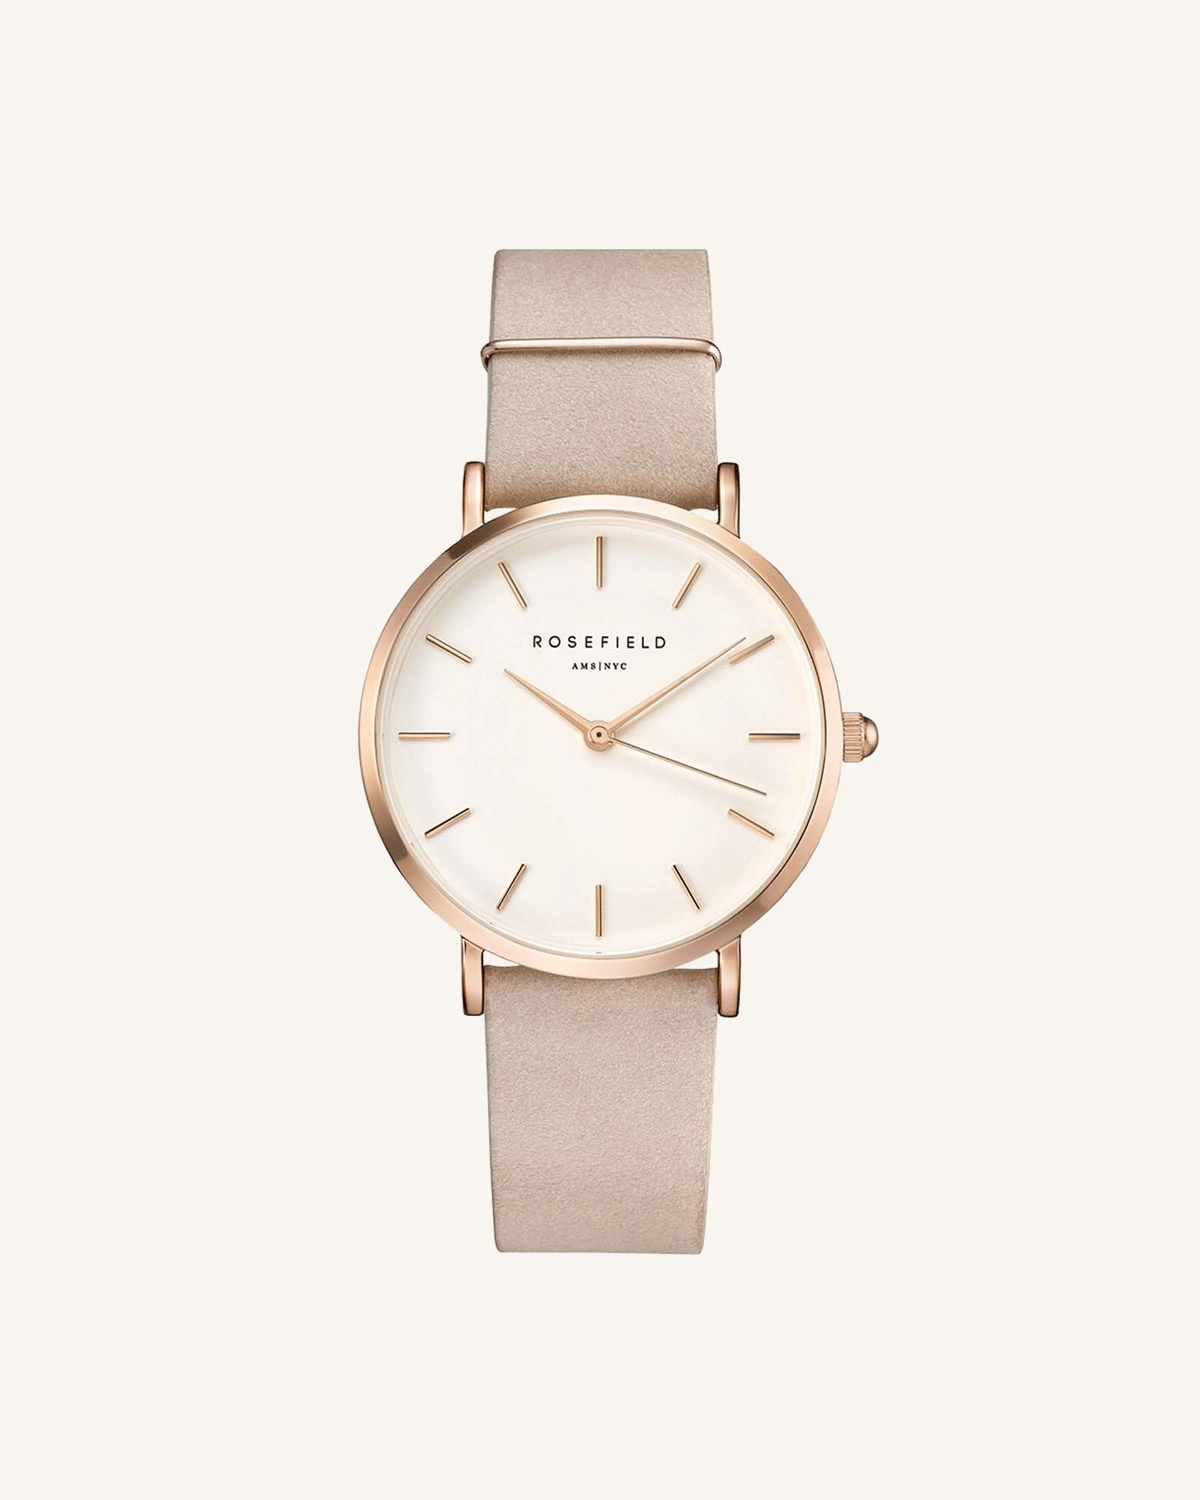 ROSEFIELD ローズフィールド The West Village Soft Pink Rose gold 33mm